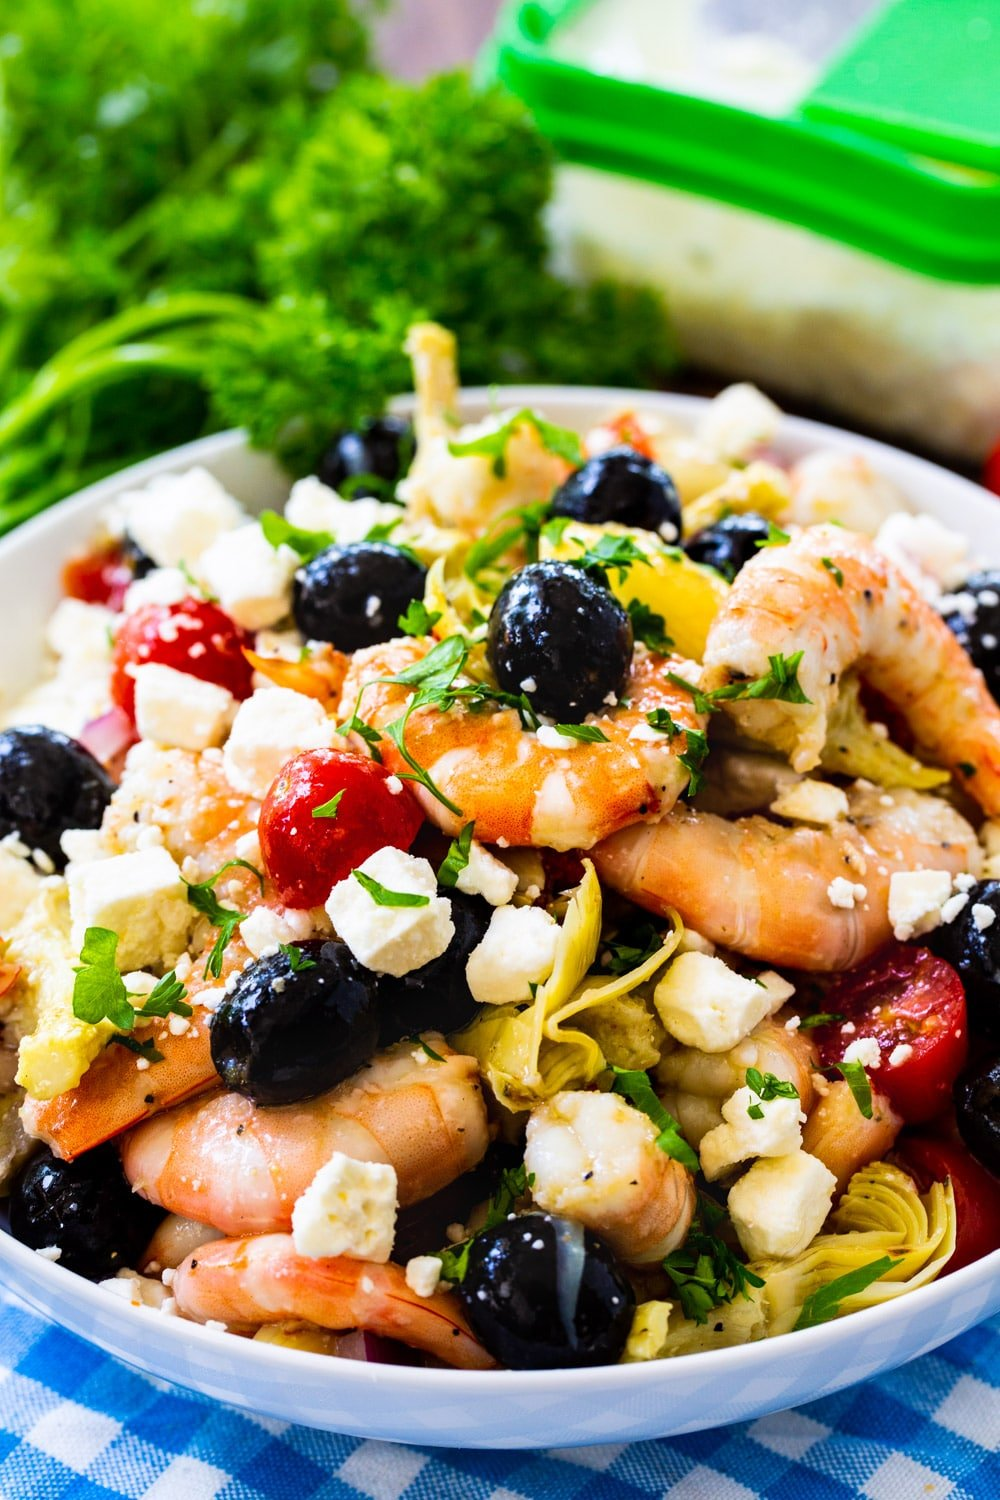 Italian Marinated Shrimp in a serving bowl.in a